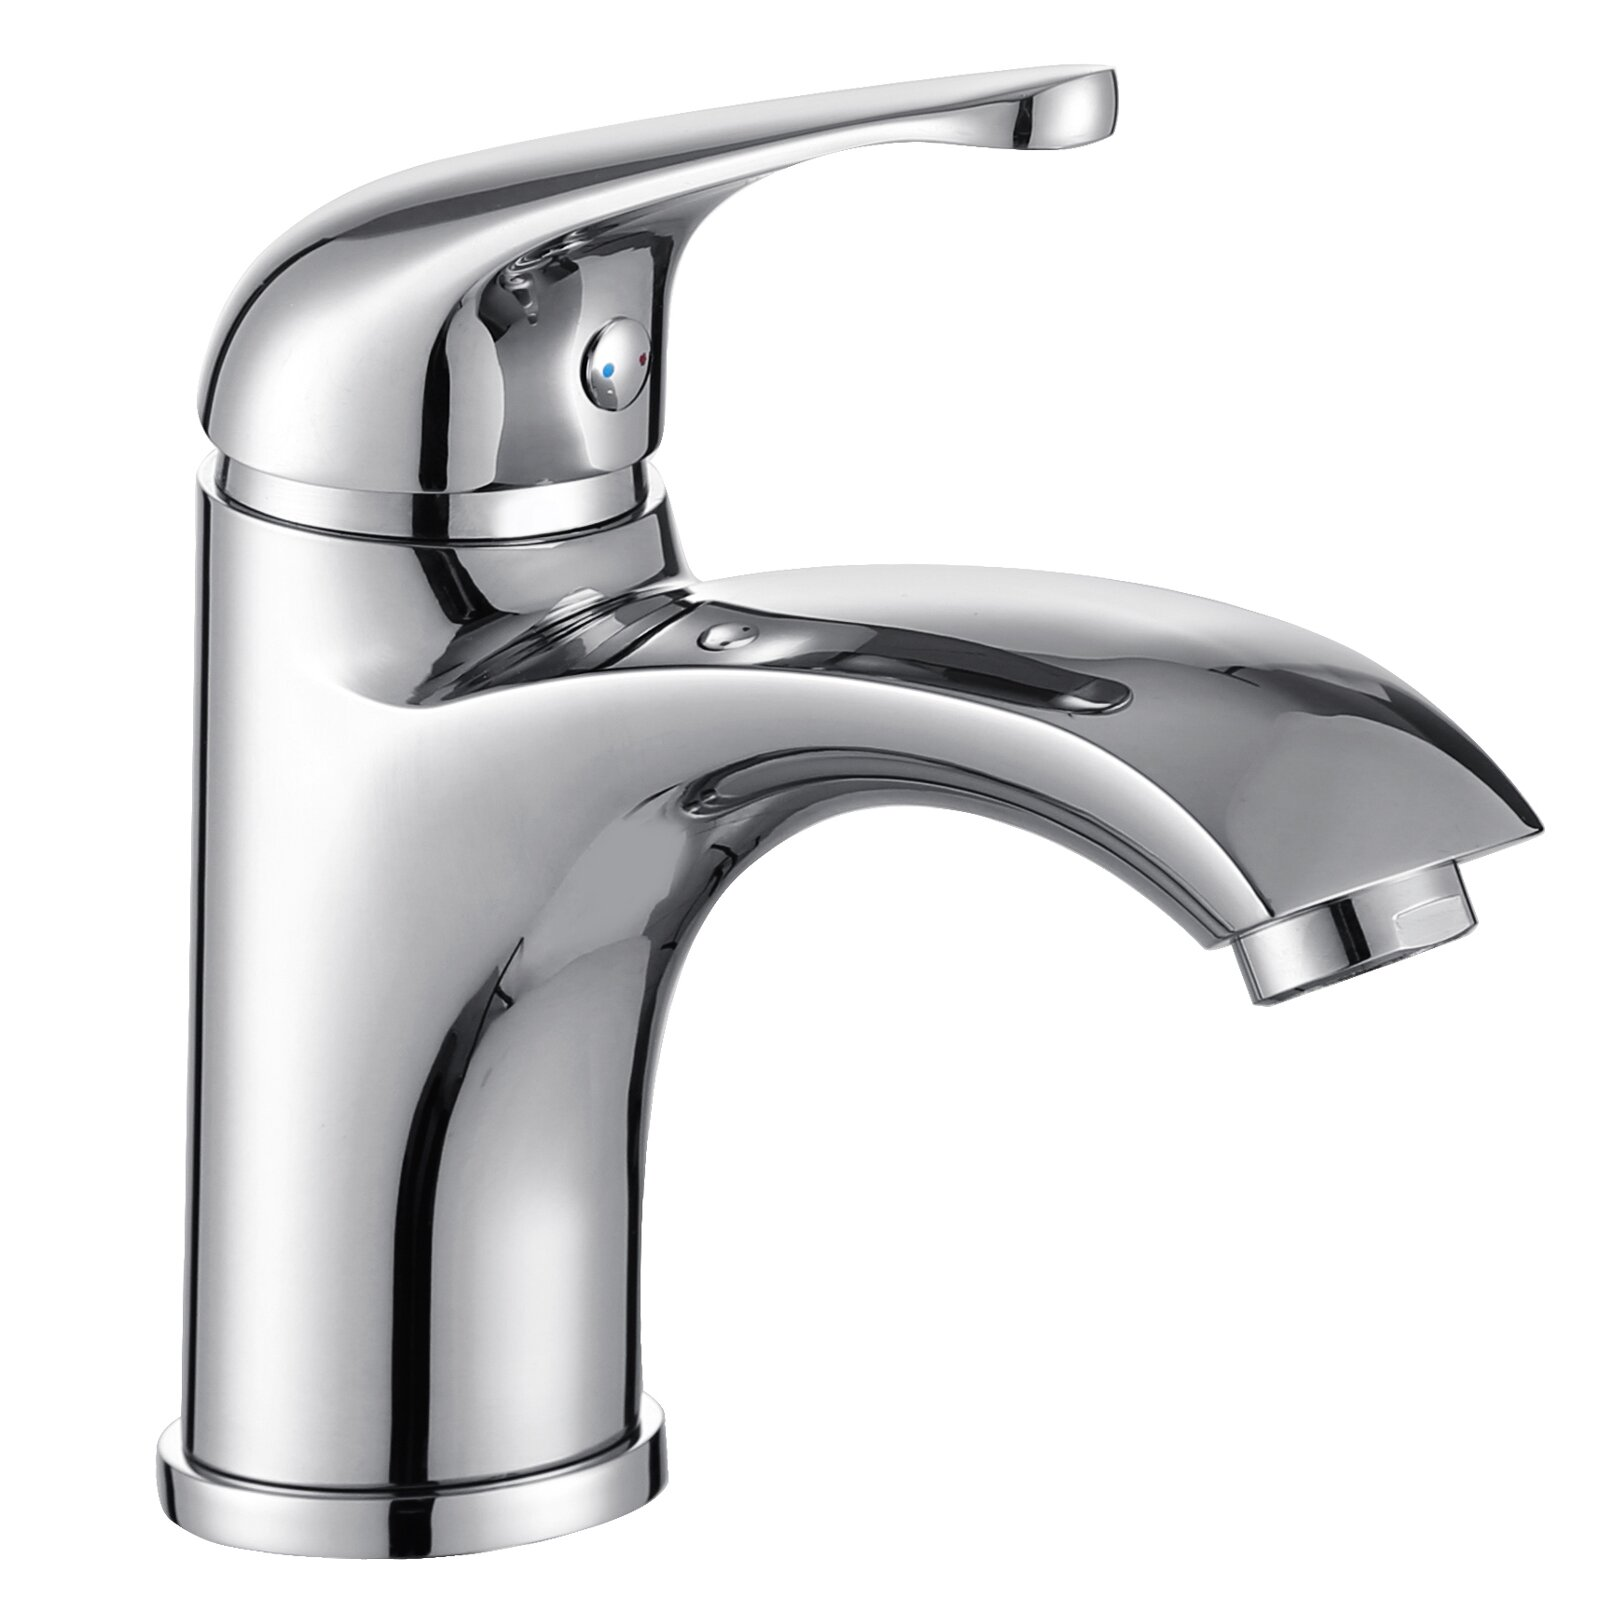 Bathtub Single Handle Faucet : Single Handle Bathroom Faucet with Edged Spout Wayfair